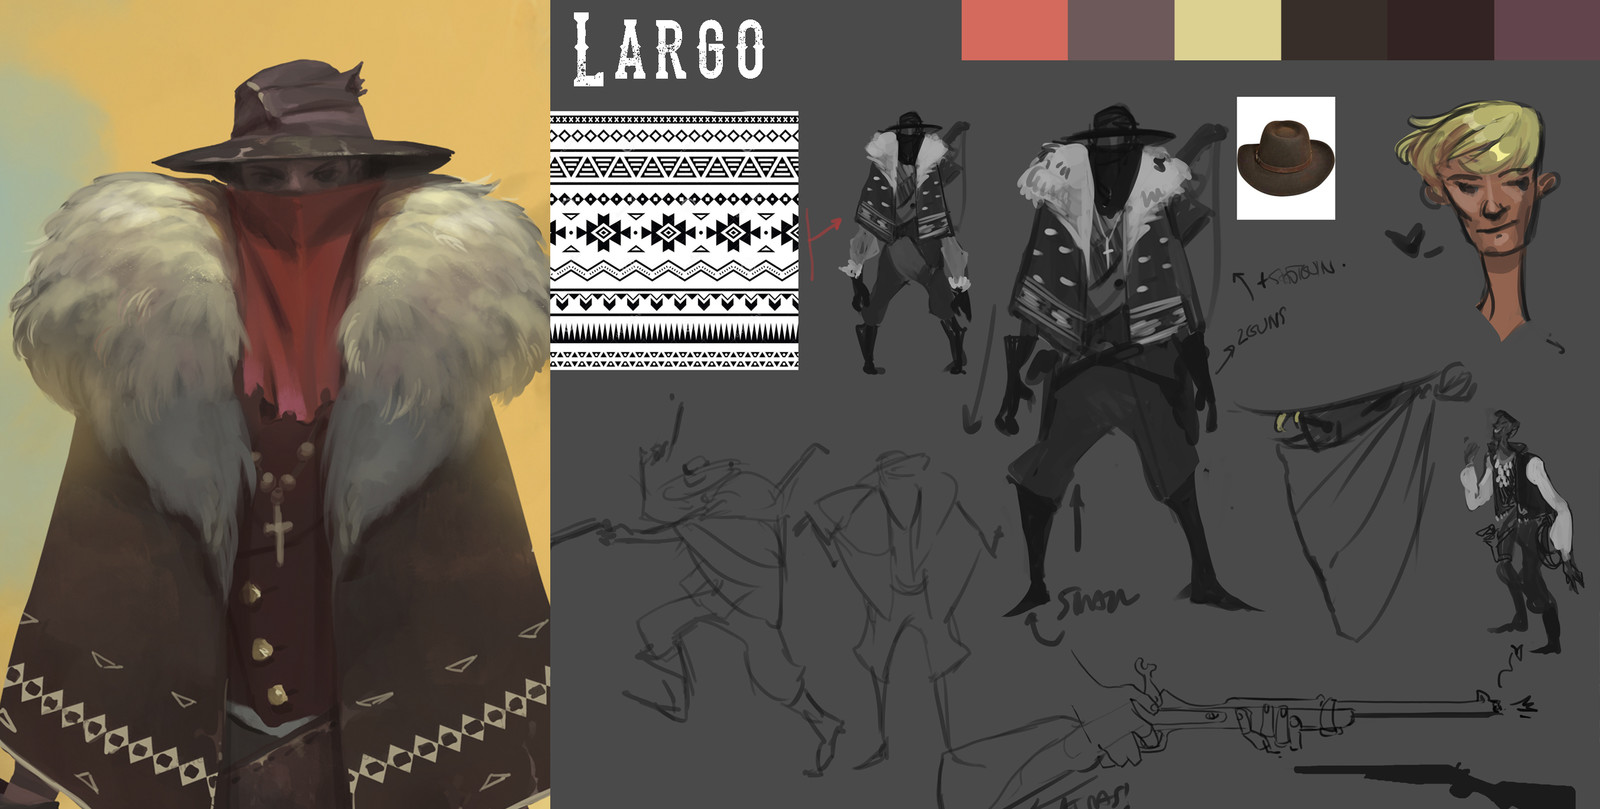 Part of the process followed to design Largo.